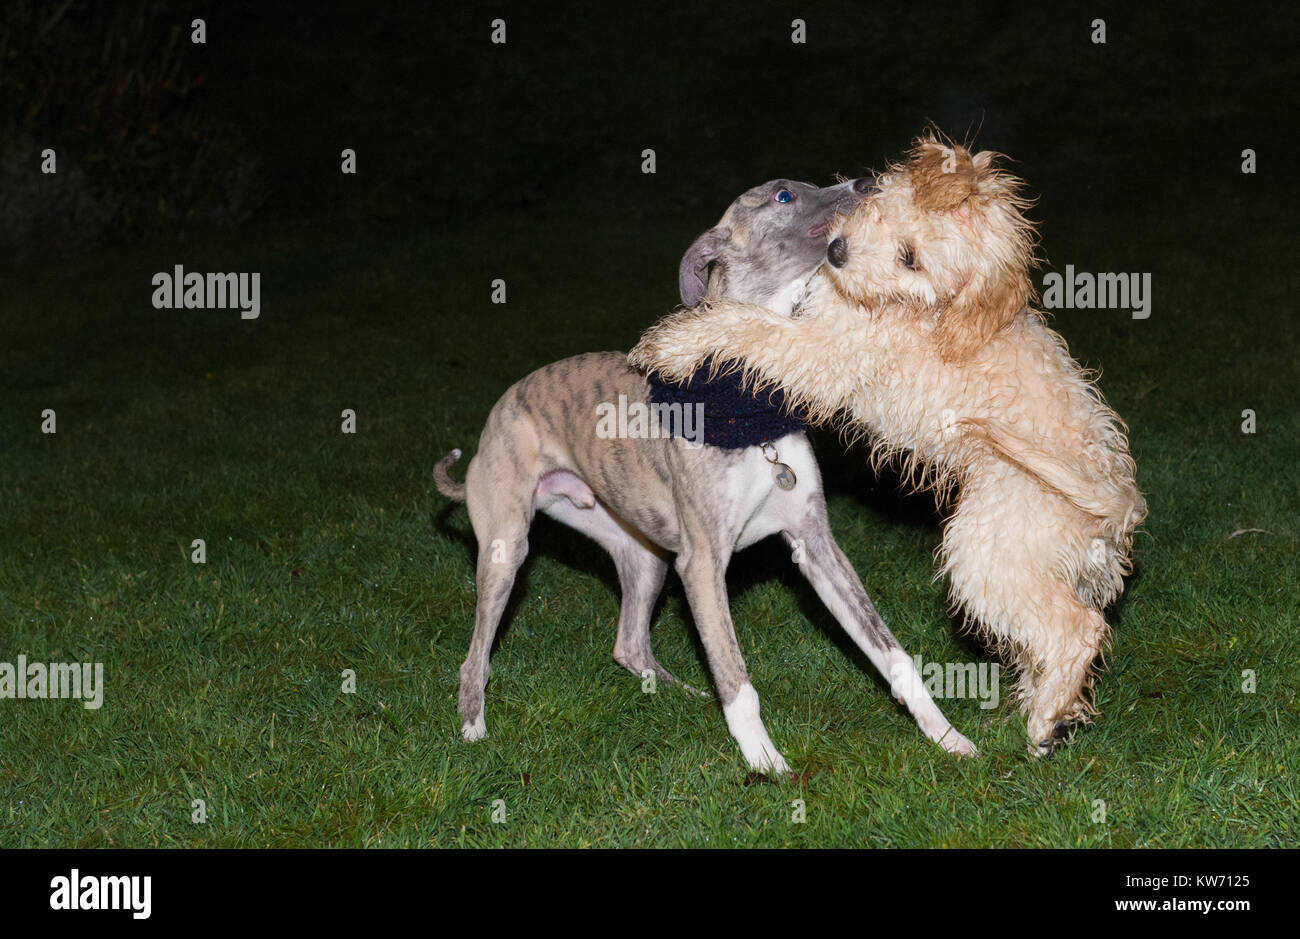 Whippet and Cockerpoo puppies play fighting. - Stock Image